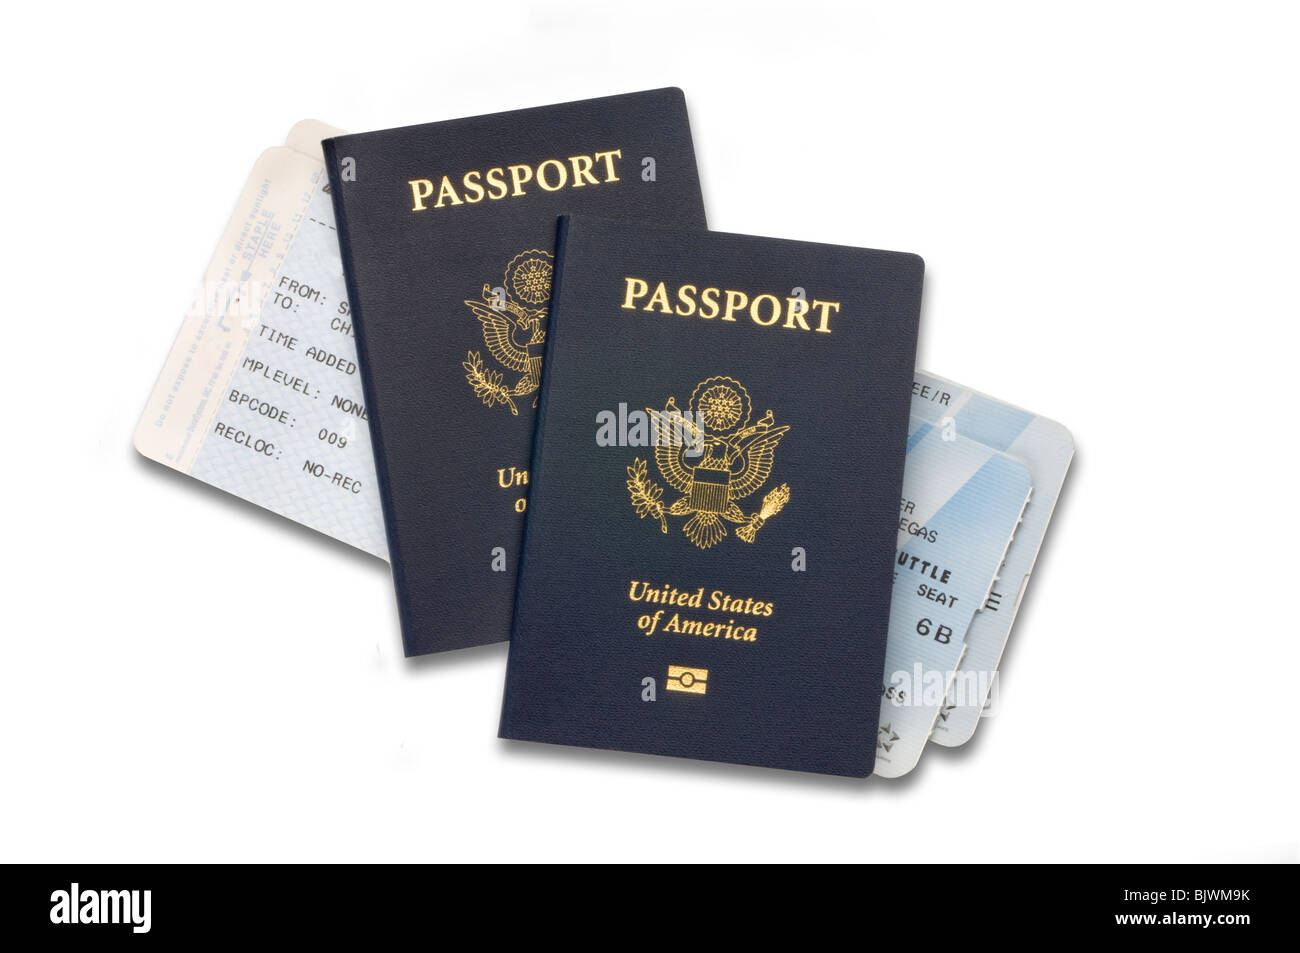 passports with airline tickets - Stock Image